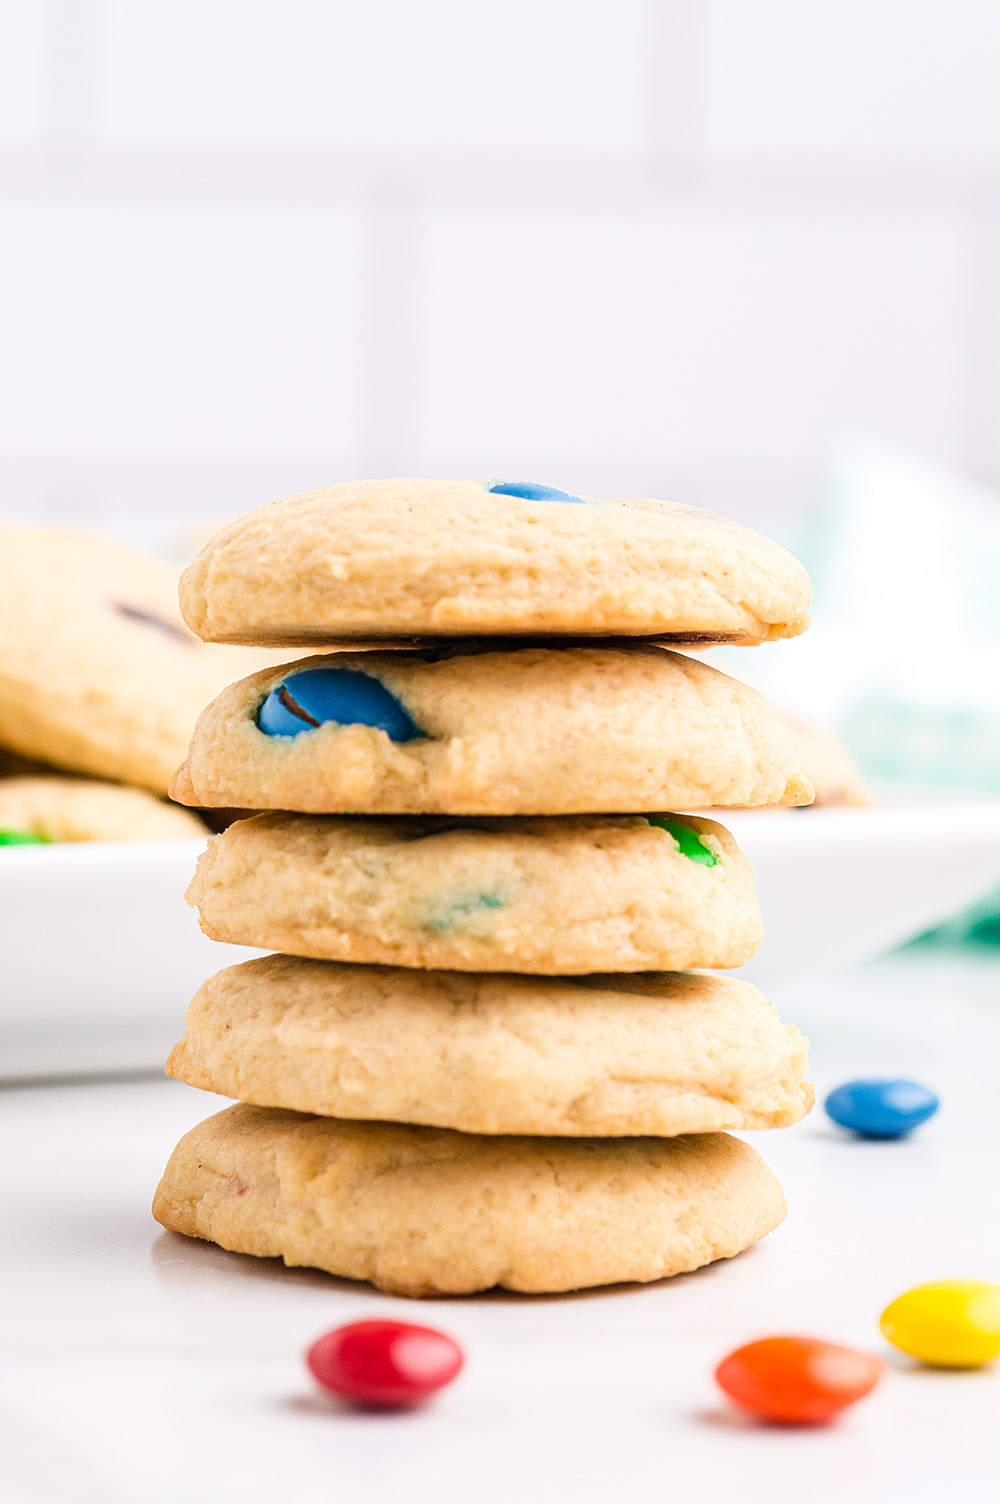 Stack of cookies with M&M candies on the table.